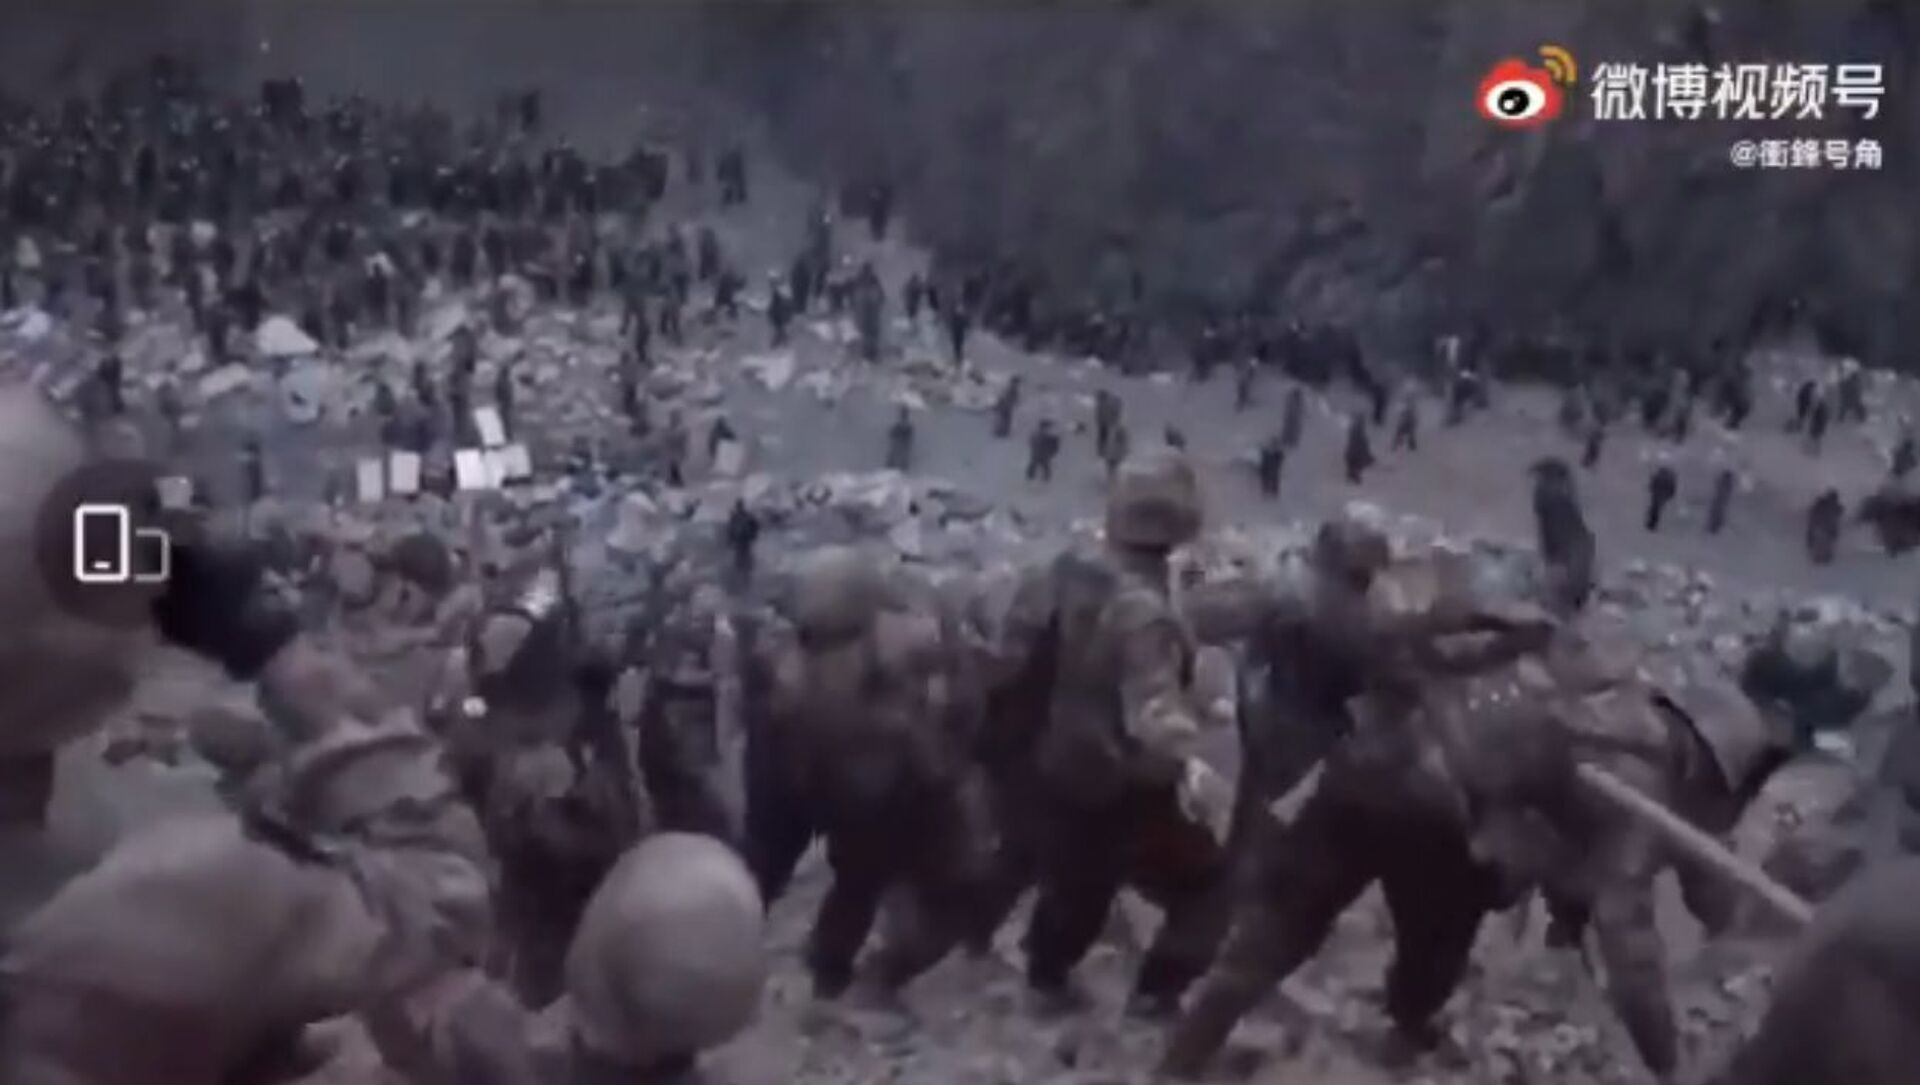 Video of Galwan valley clash between Indian and Chinese toops released by Indian and Chinese media - Sputnik International, 1920, 03.08.2021